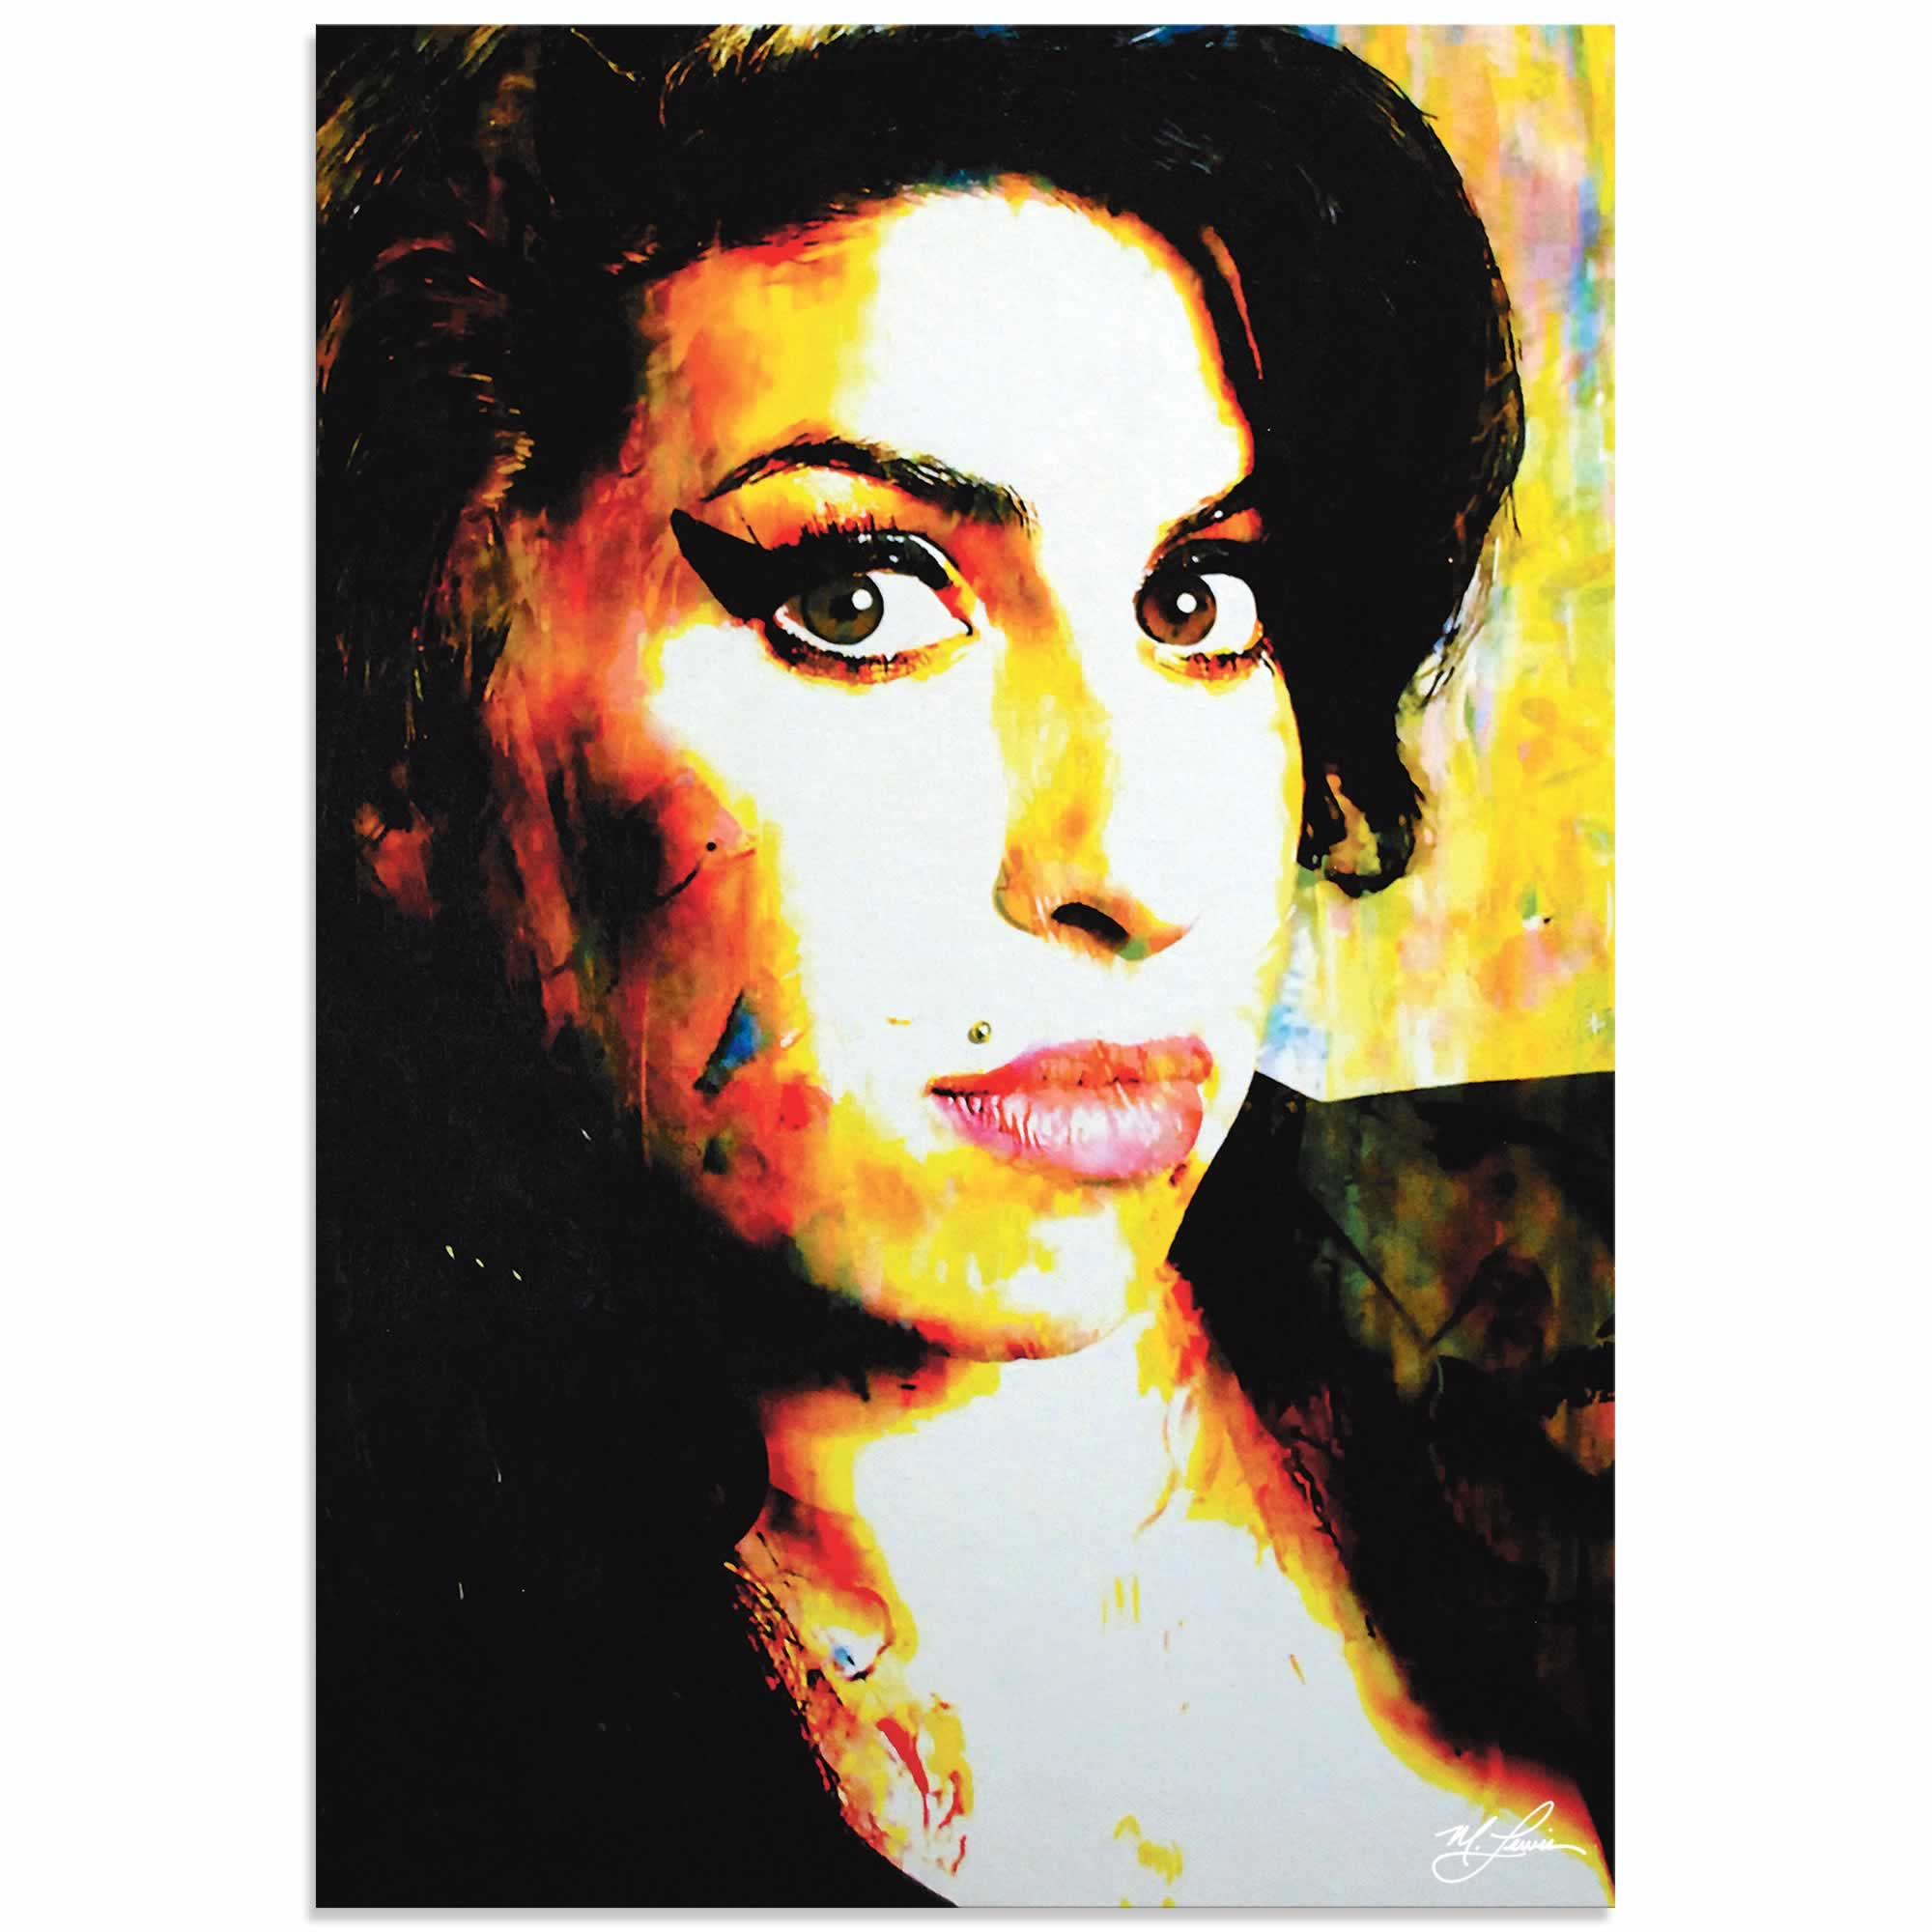 Amy Winehouse A School of Thought | Pop Art Painting by Mark Lewis, Signed & Numbered Limited Edition